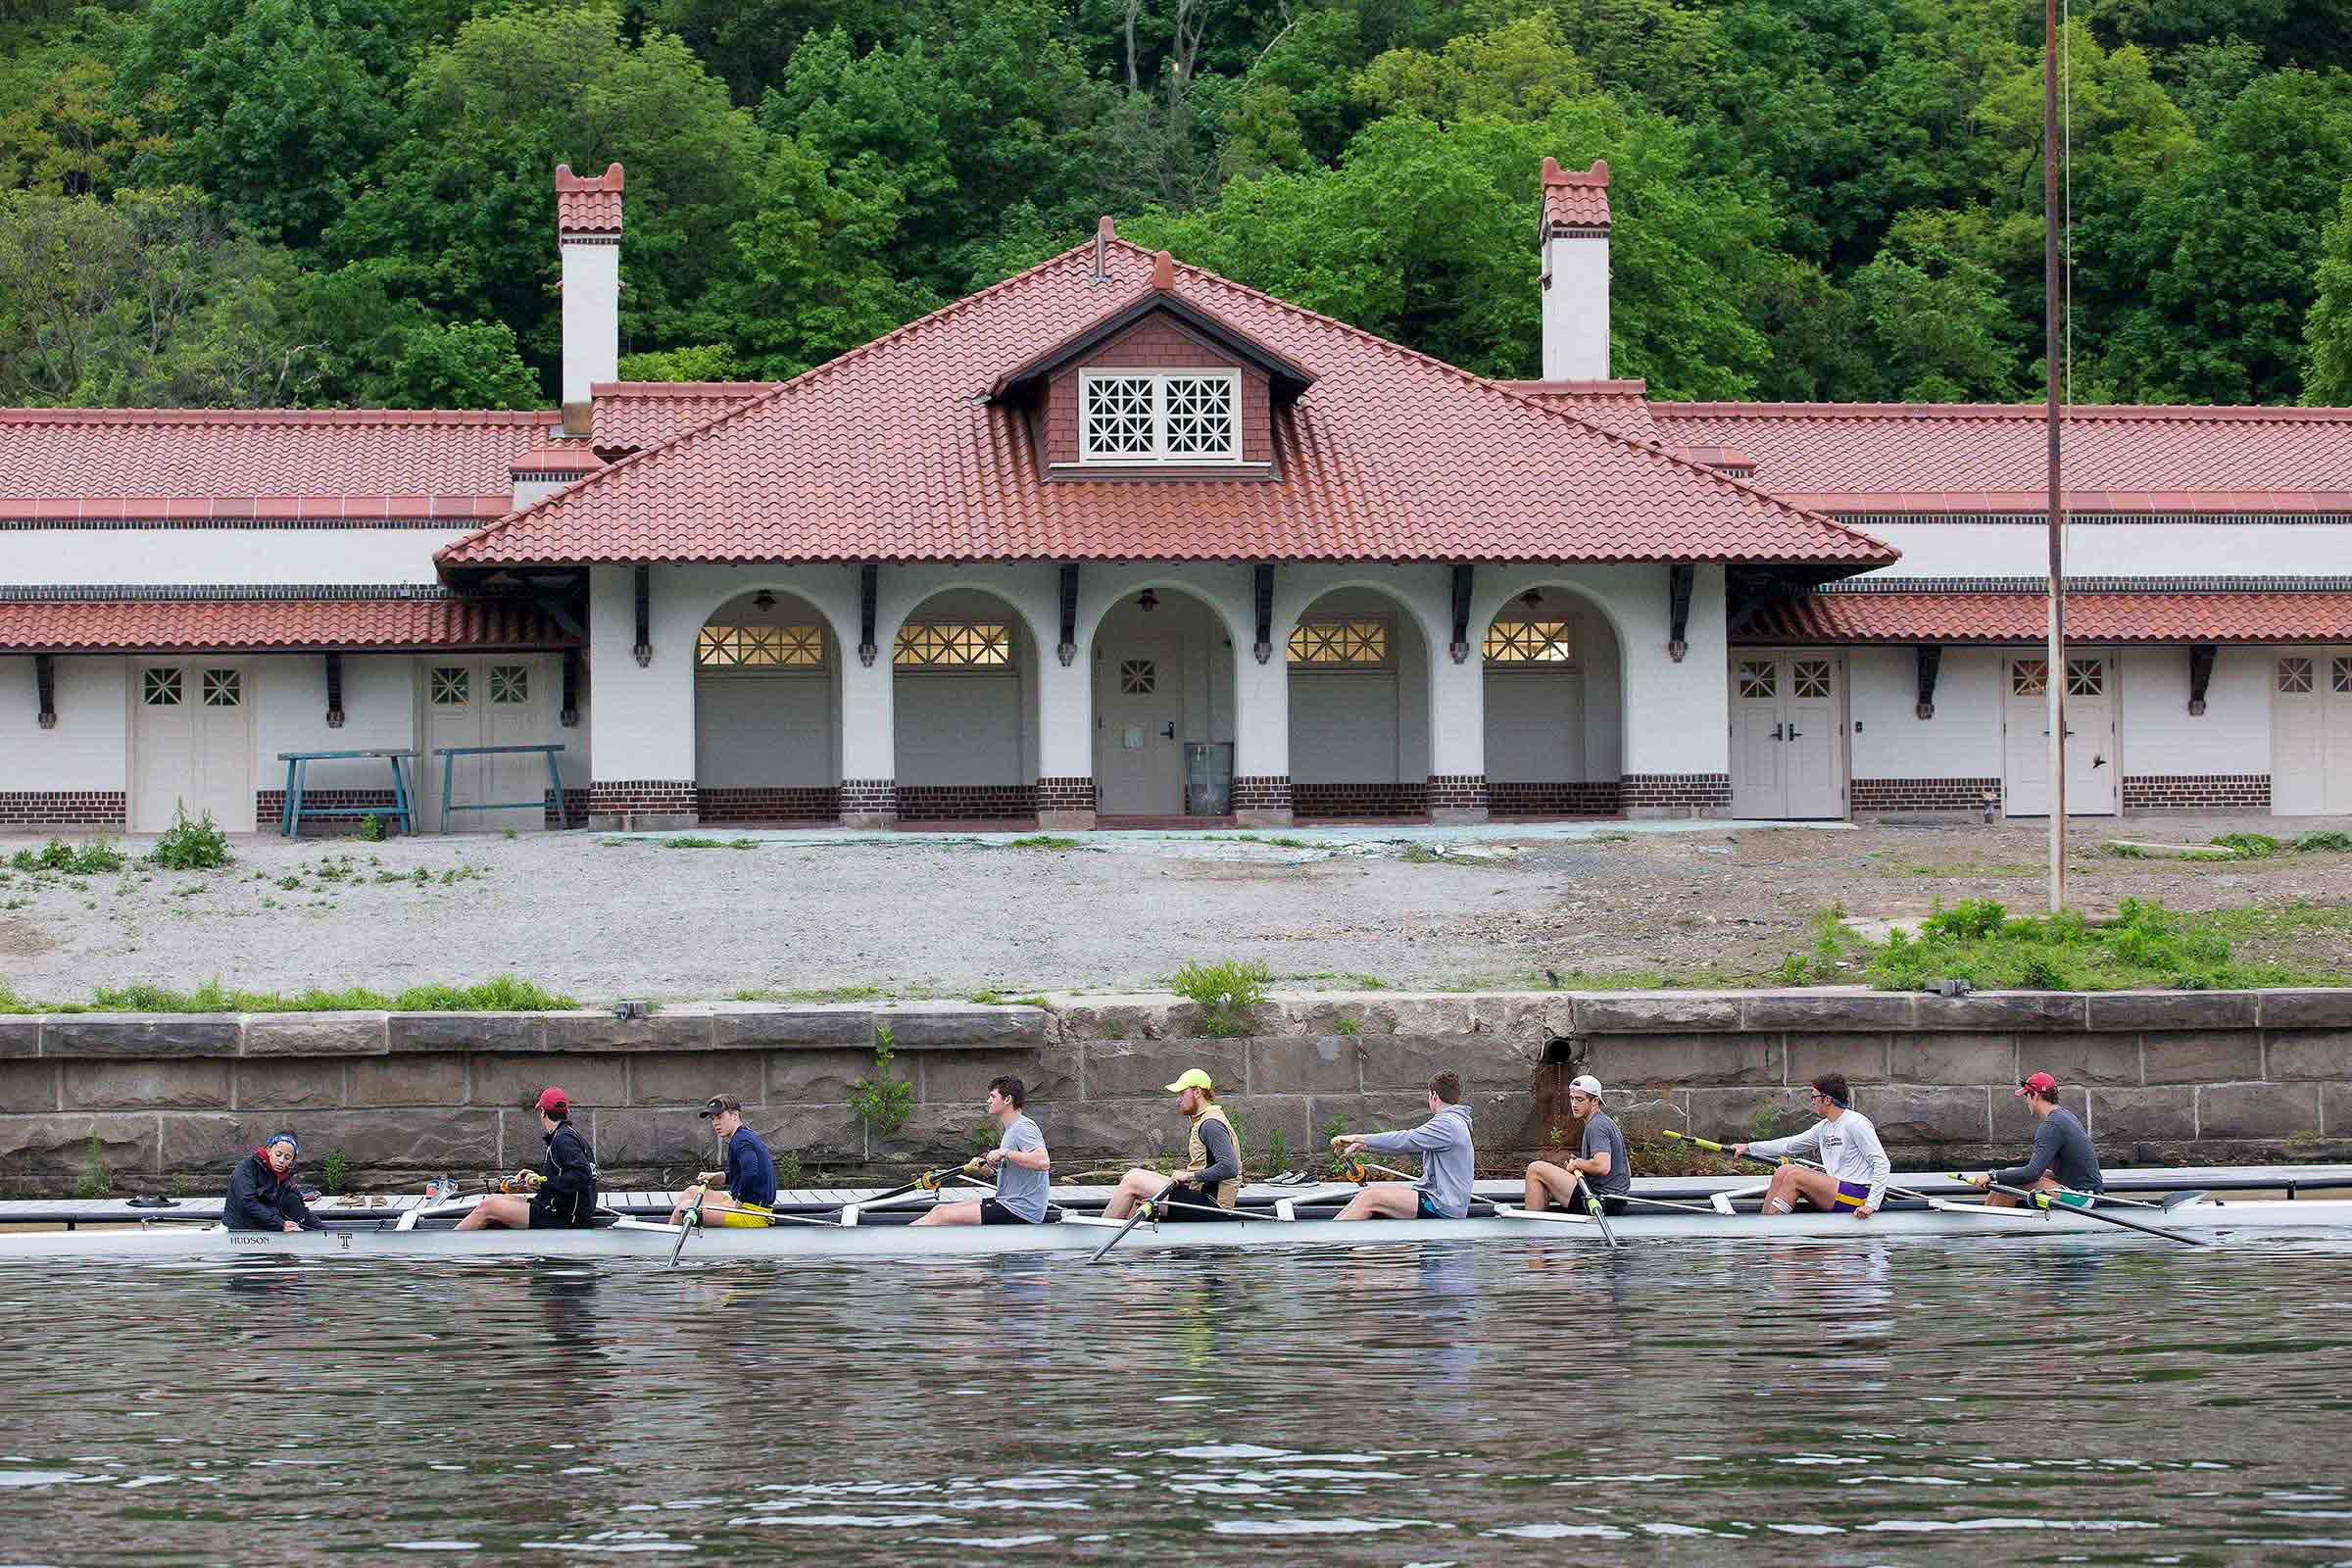 Temple Men´s Crew team at their newly renovated boathouse, on the Schuykill River, in Philadelphia, Wednesday, May 10, 2017.